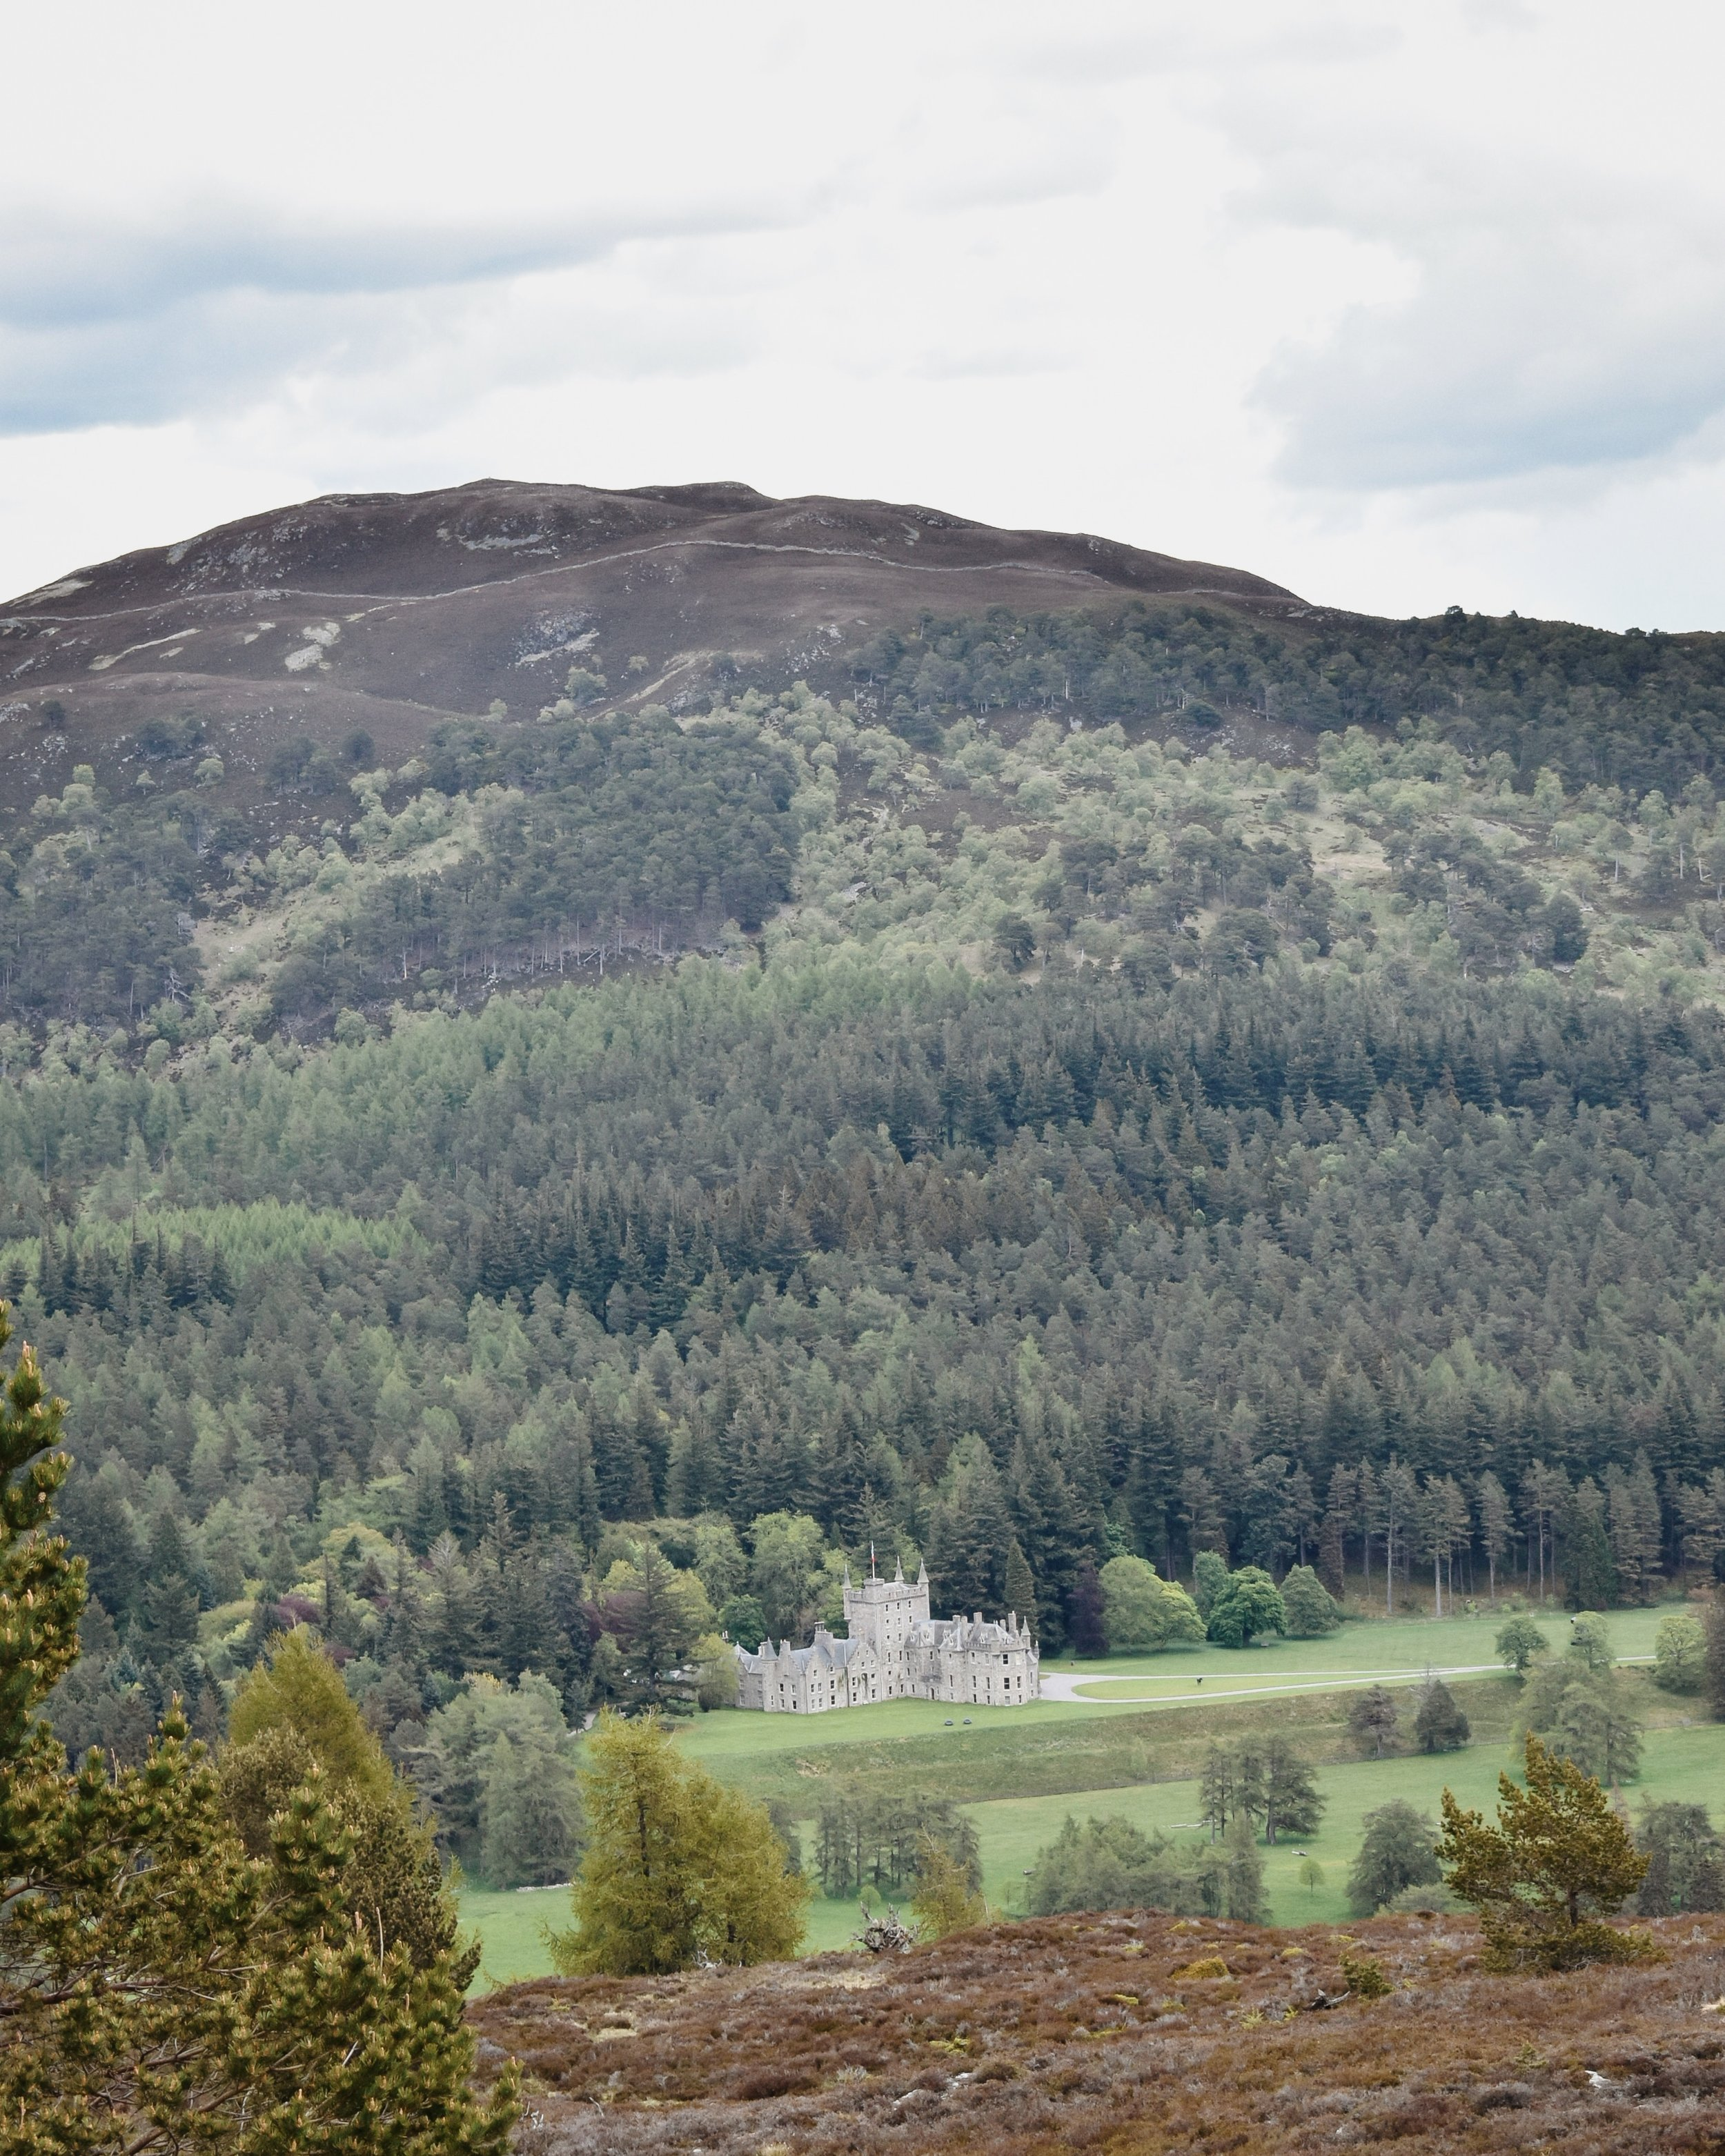 Looking towards the Invercauld estate